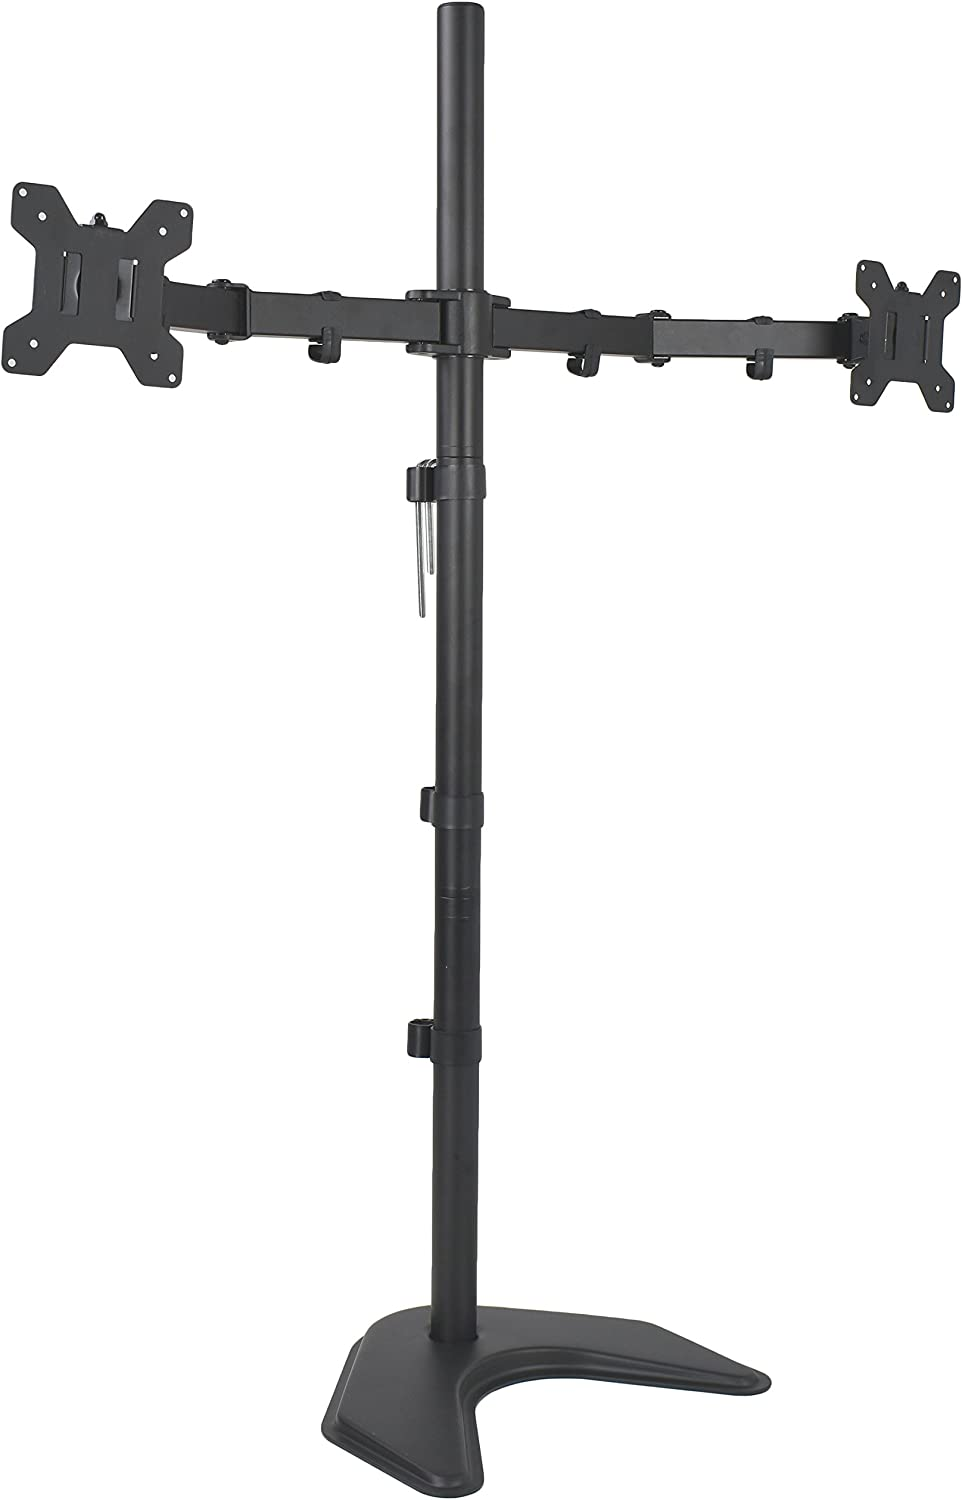 VIVO Dual Monitor Free-Standing Stand up Desk Mount, Extra Tall 40 inch Pole, Height Adjustable | Fits up to 27 inch Screens (STAND-V012F)